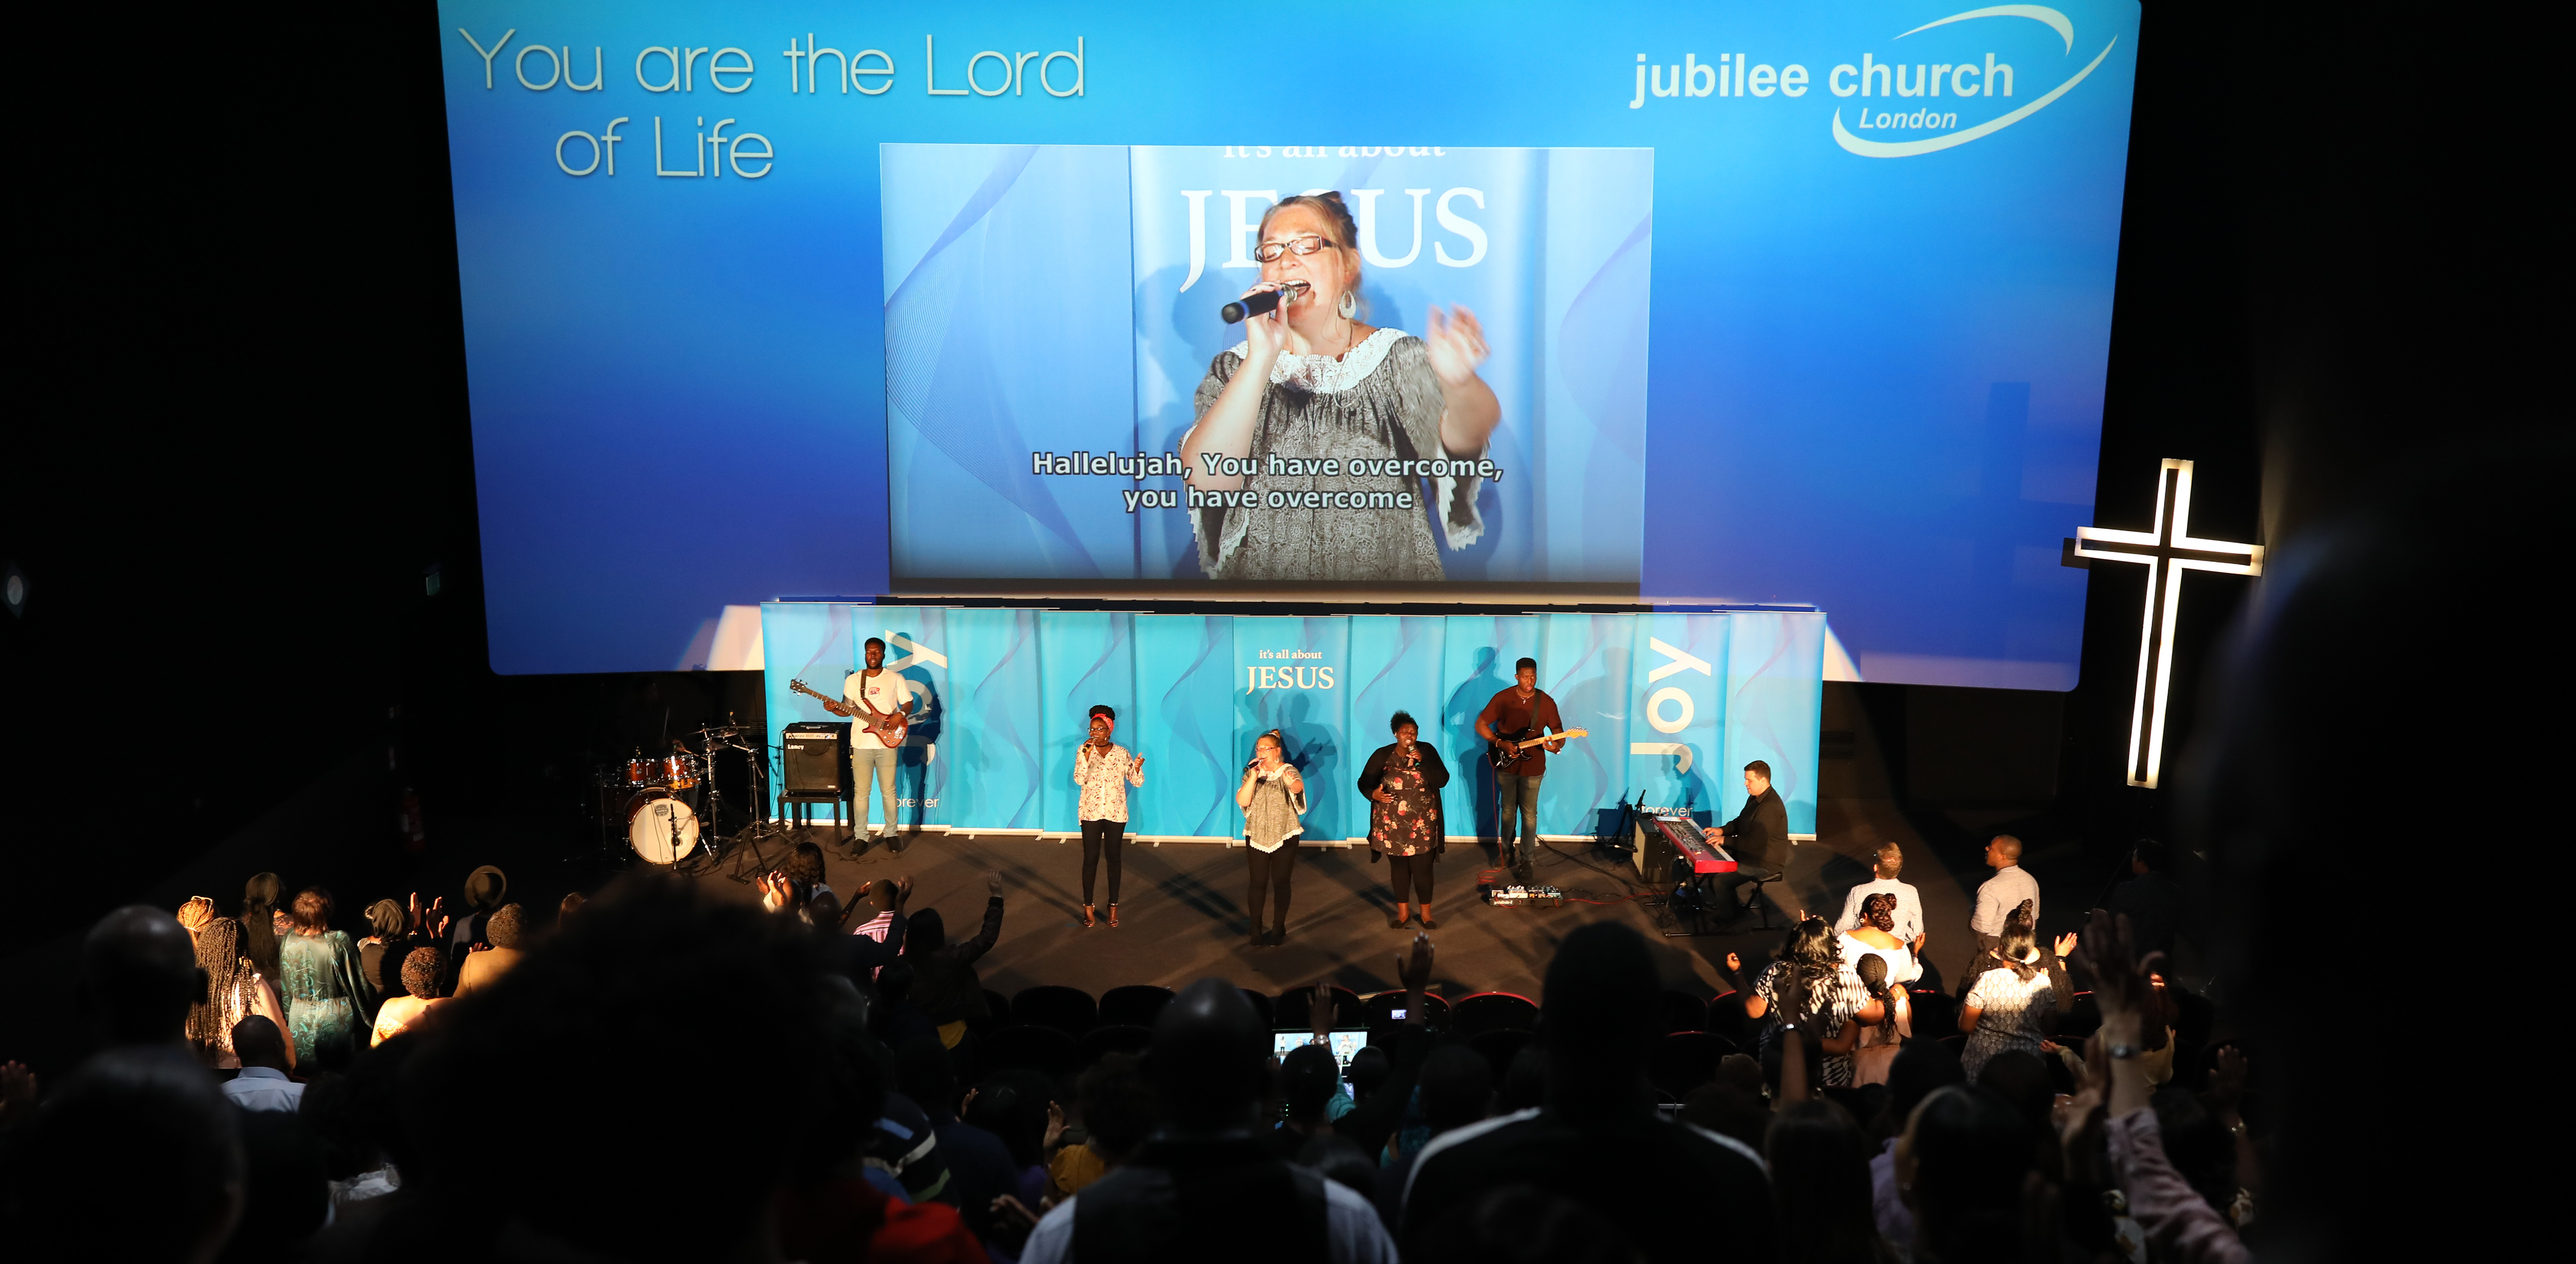 About Jubilee Church London